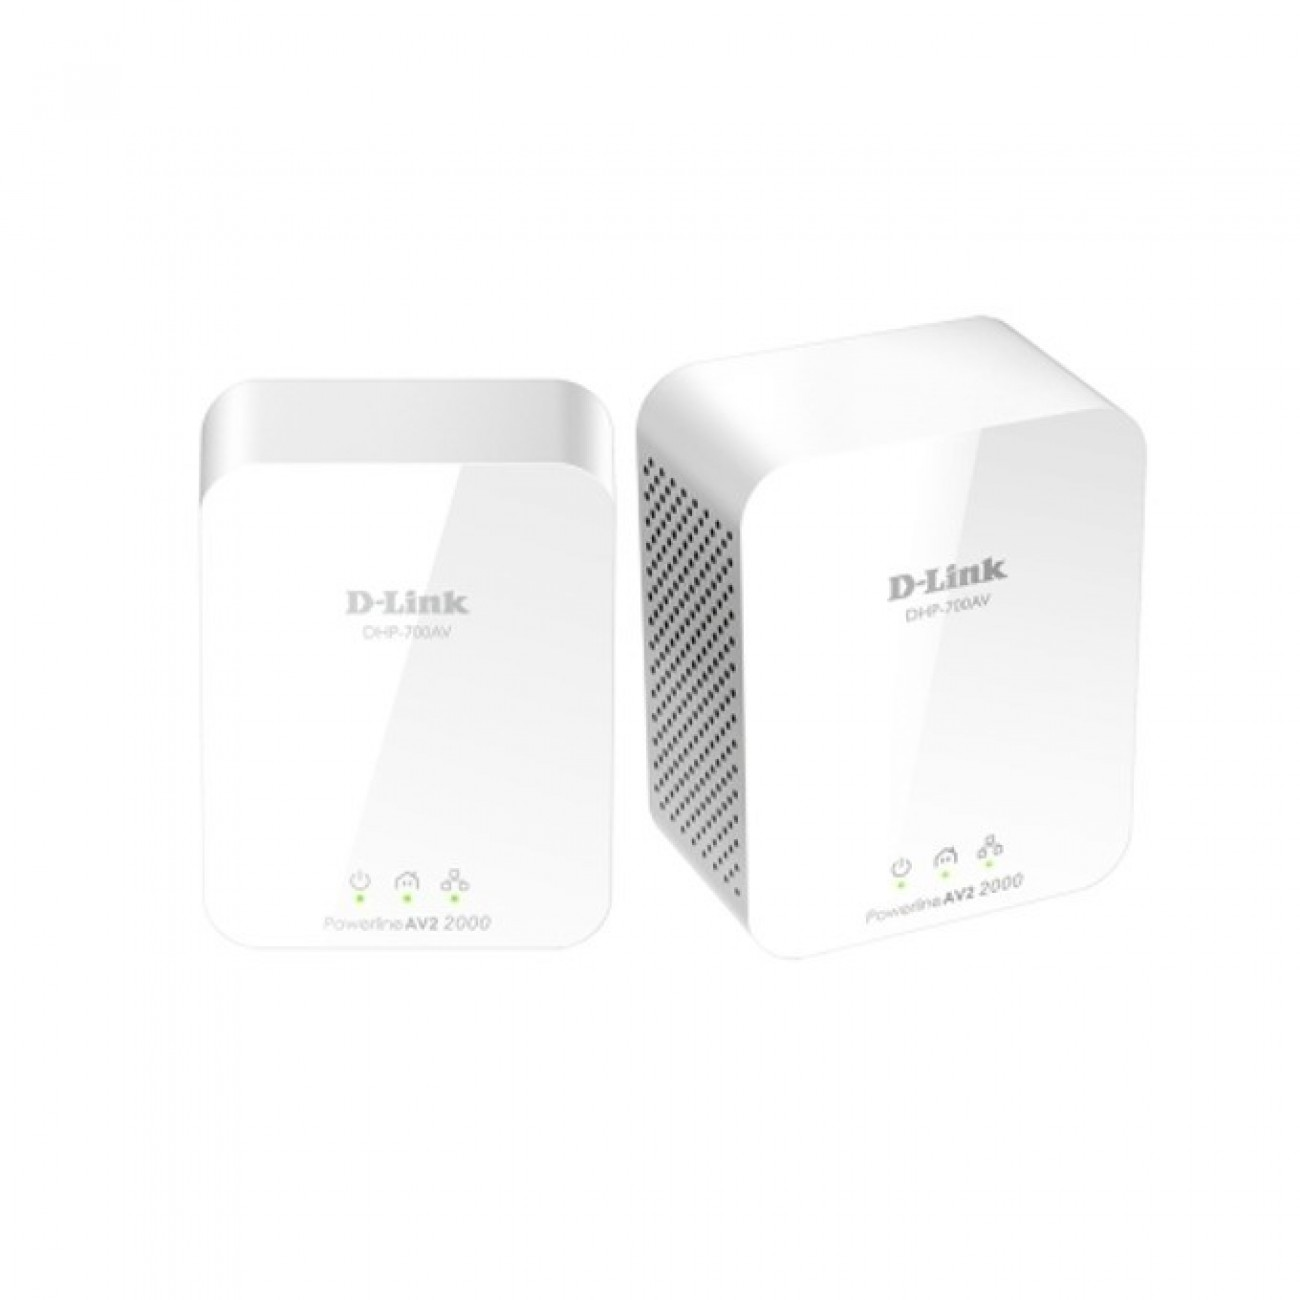 Powerline адаптер D-Link PowerLine AV2 2000 HD Gigabit Starter Kit, 1900Mbps, 1x LAN1000, 2 устройства в Powerline мрежи -  | Alleop